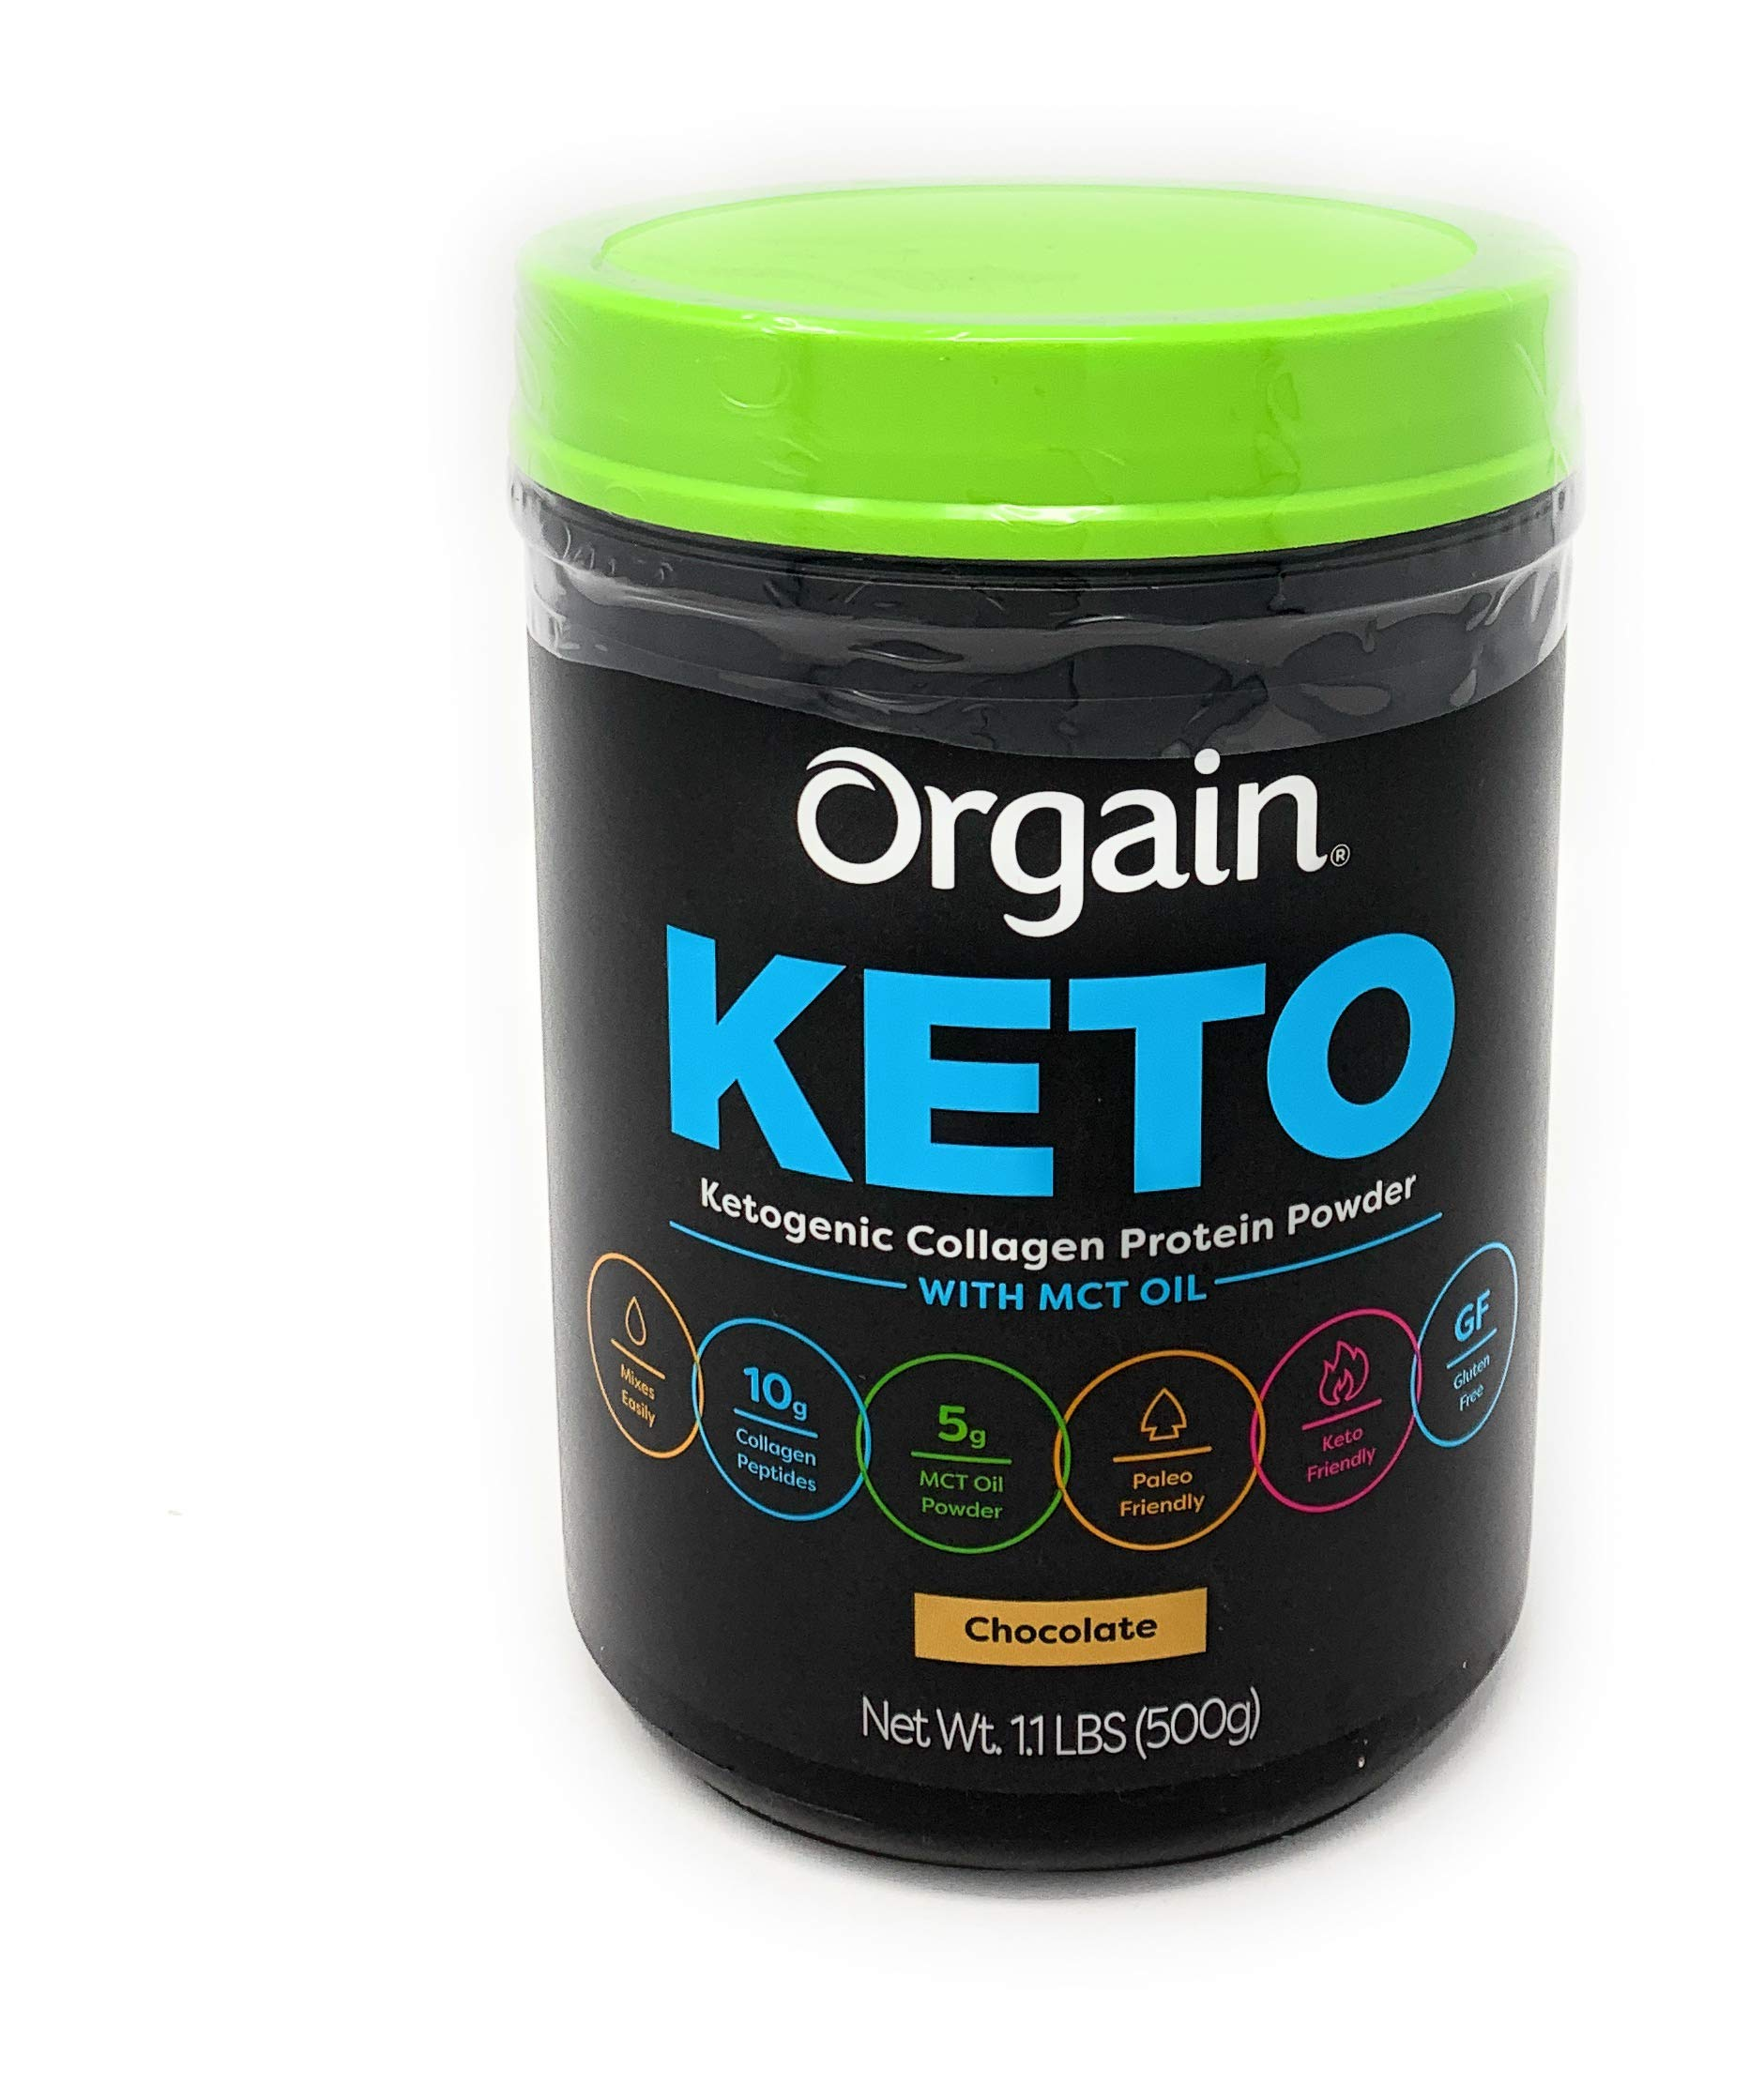 Orgain Keto Collagen Protein Chocolate Powder with MCT Oil Net Wt 1lbs, 1lb